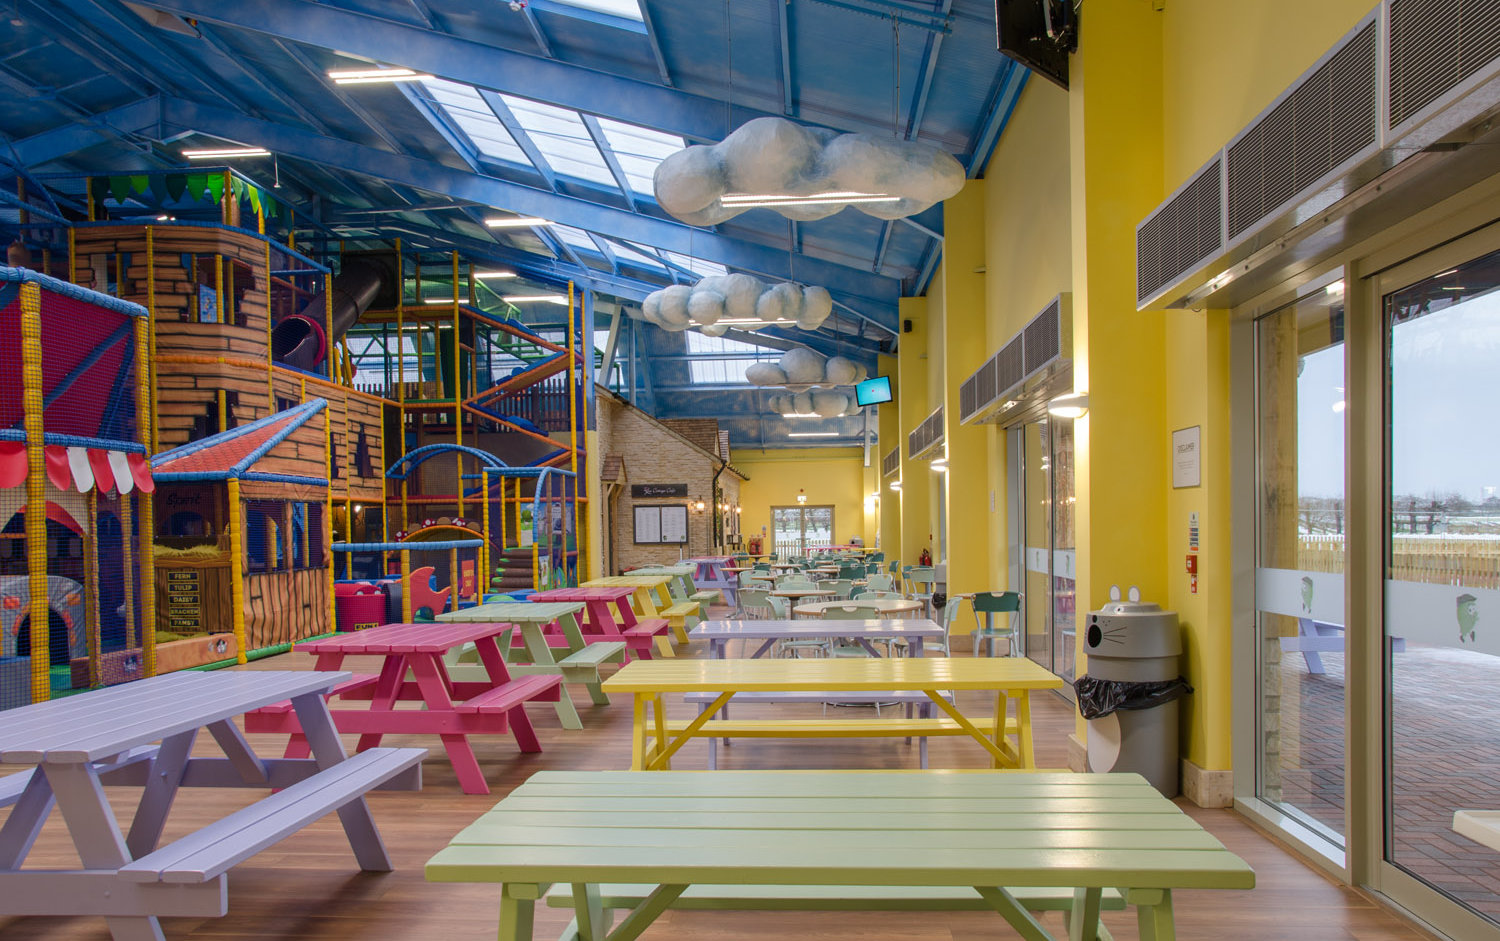 Lighting for an indoor children's play area